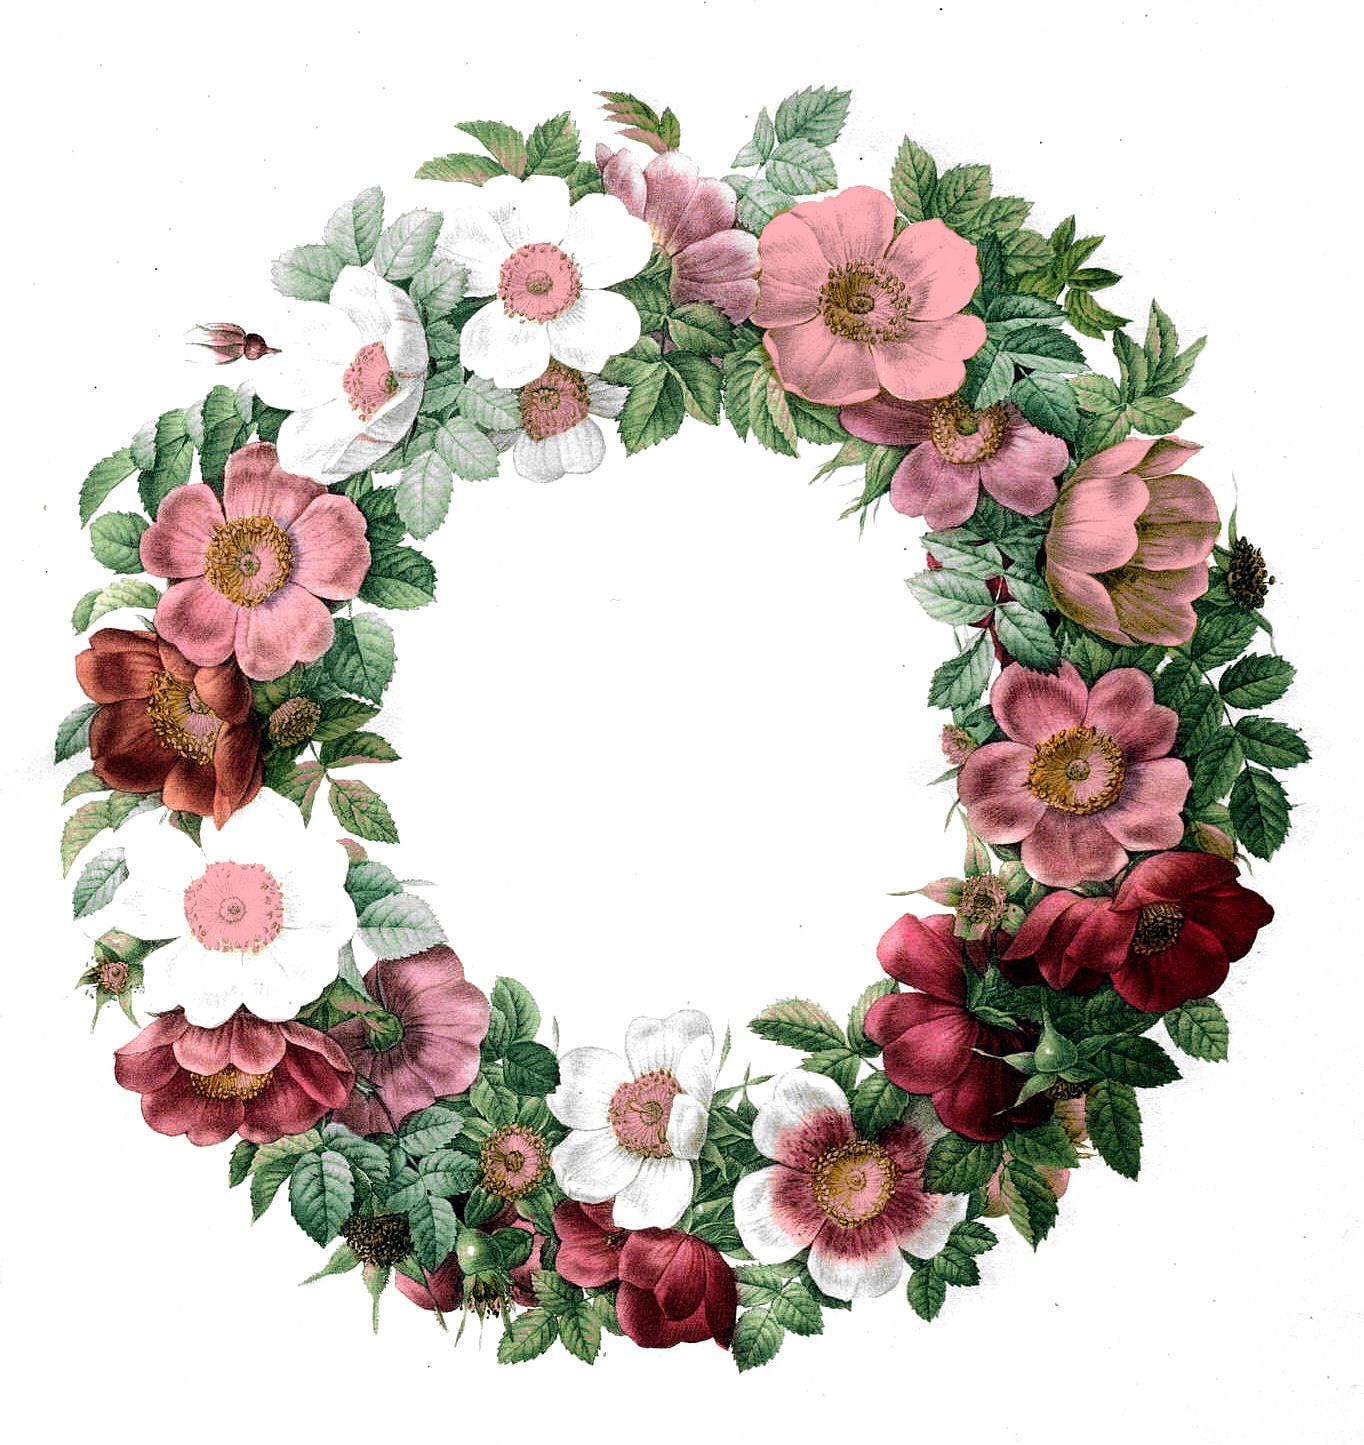 Free Vintage Clip Art - Rose Wreath | Clip art, Graphics and ...